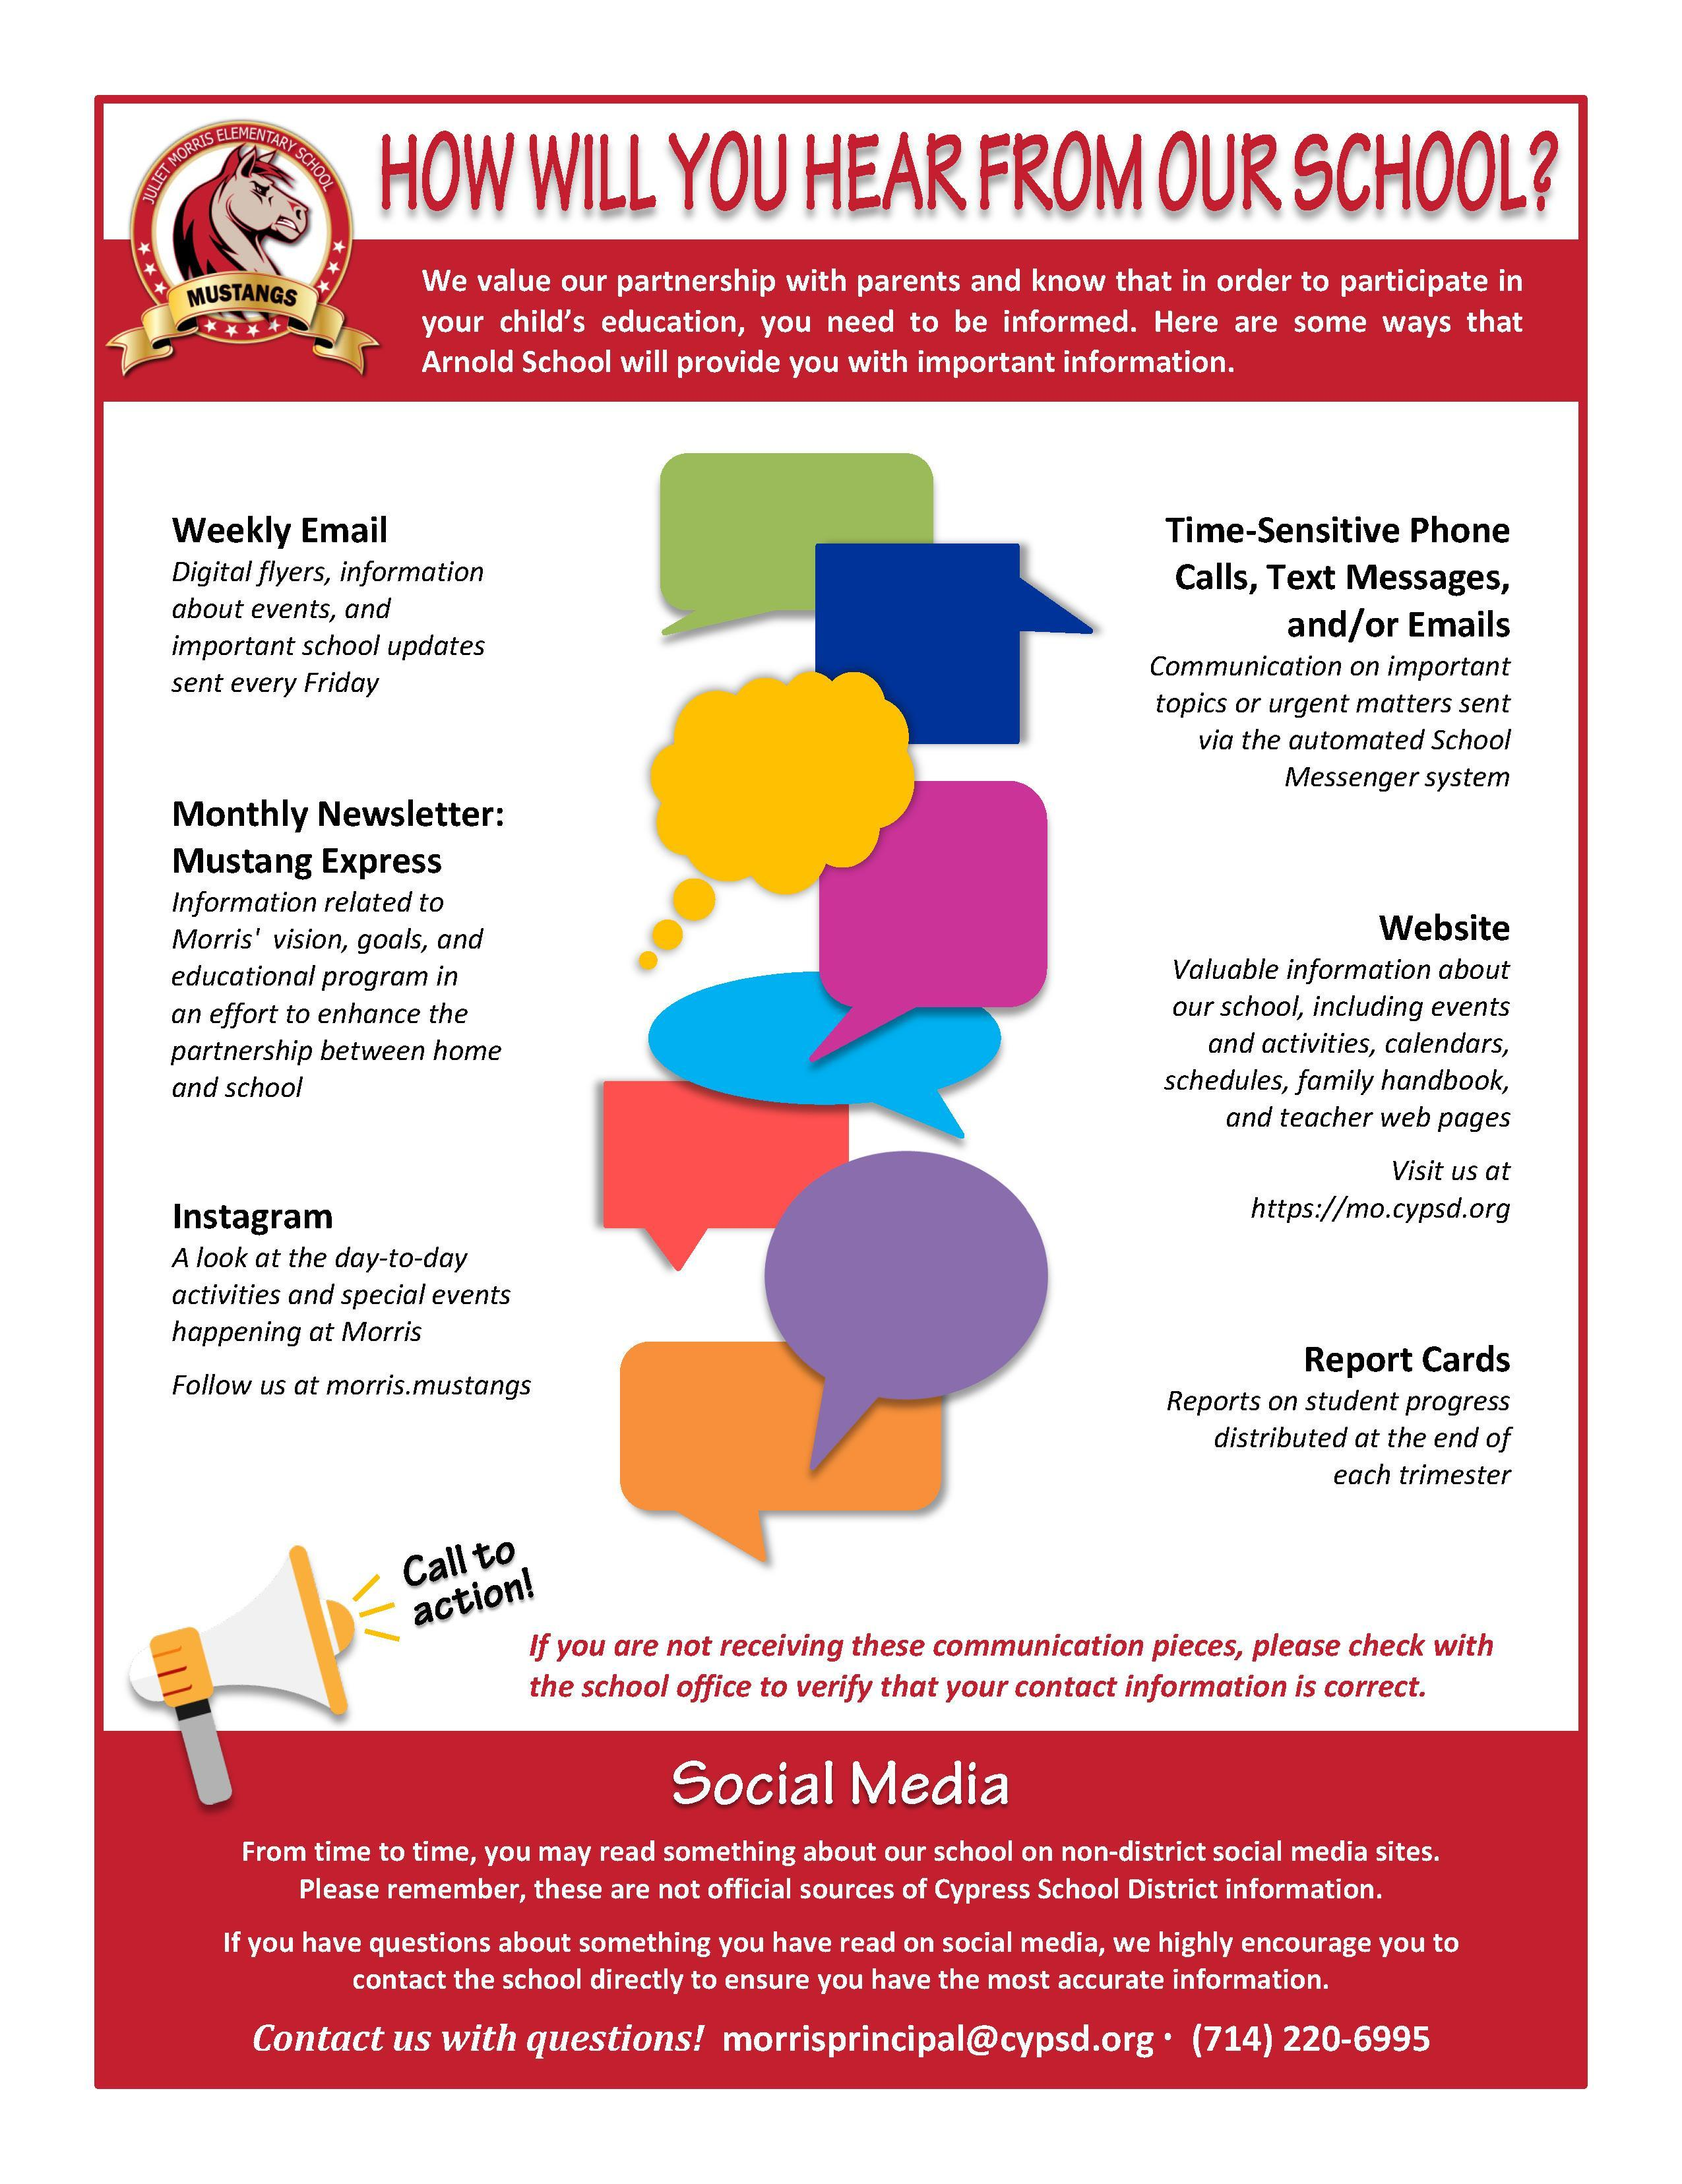 How Will You Hear From School Infographic